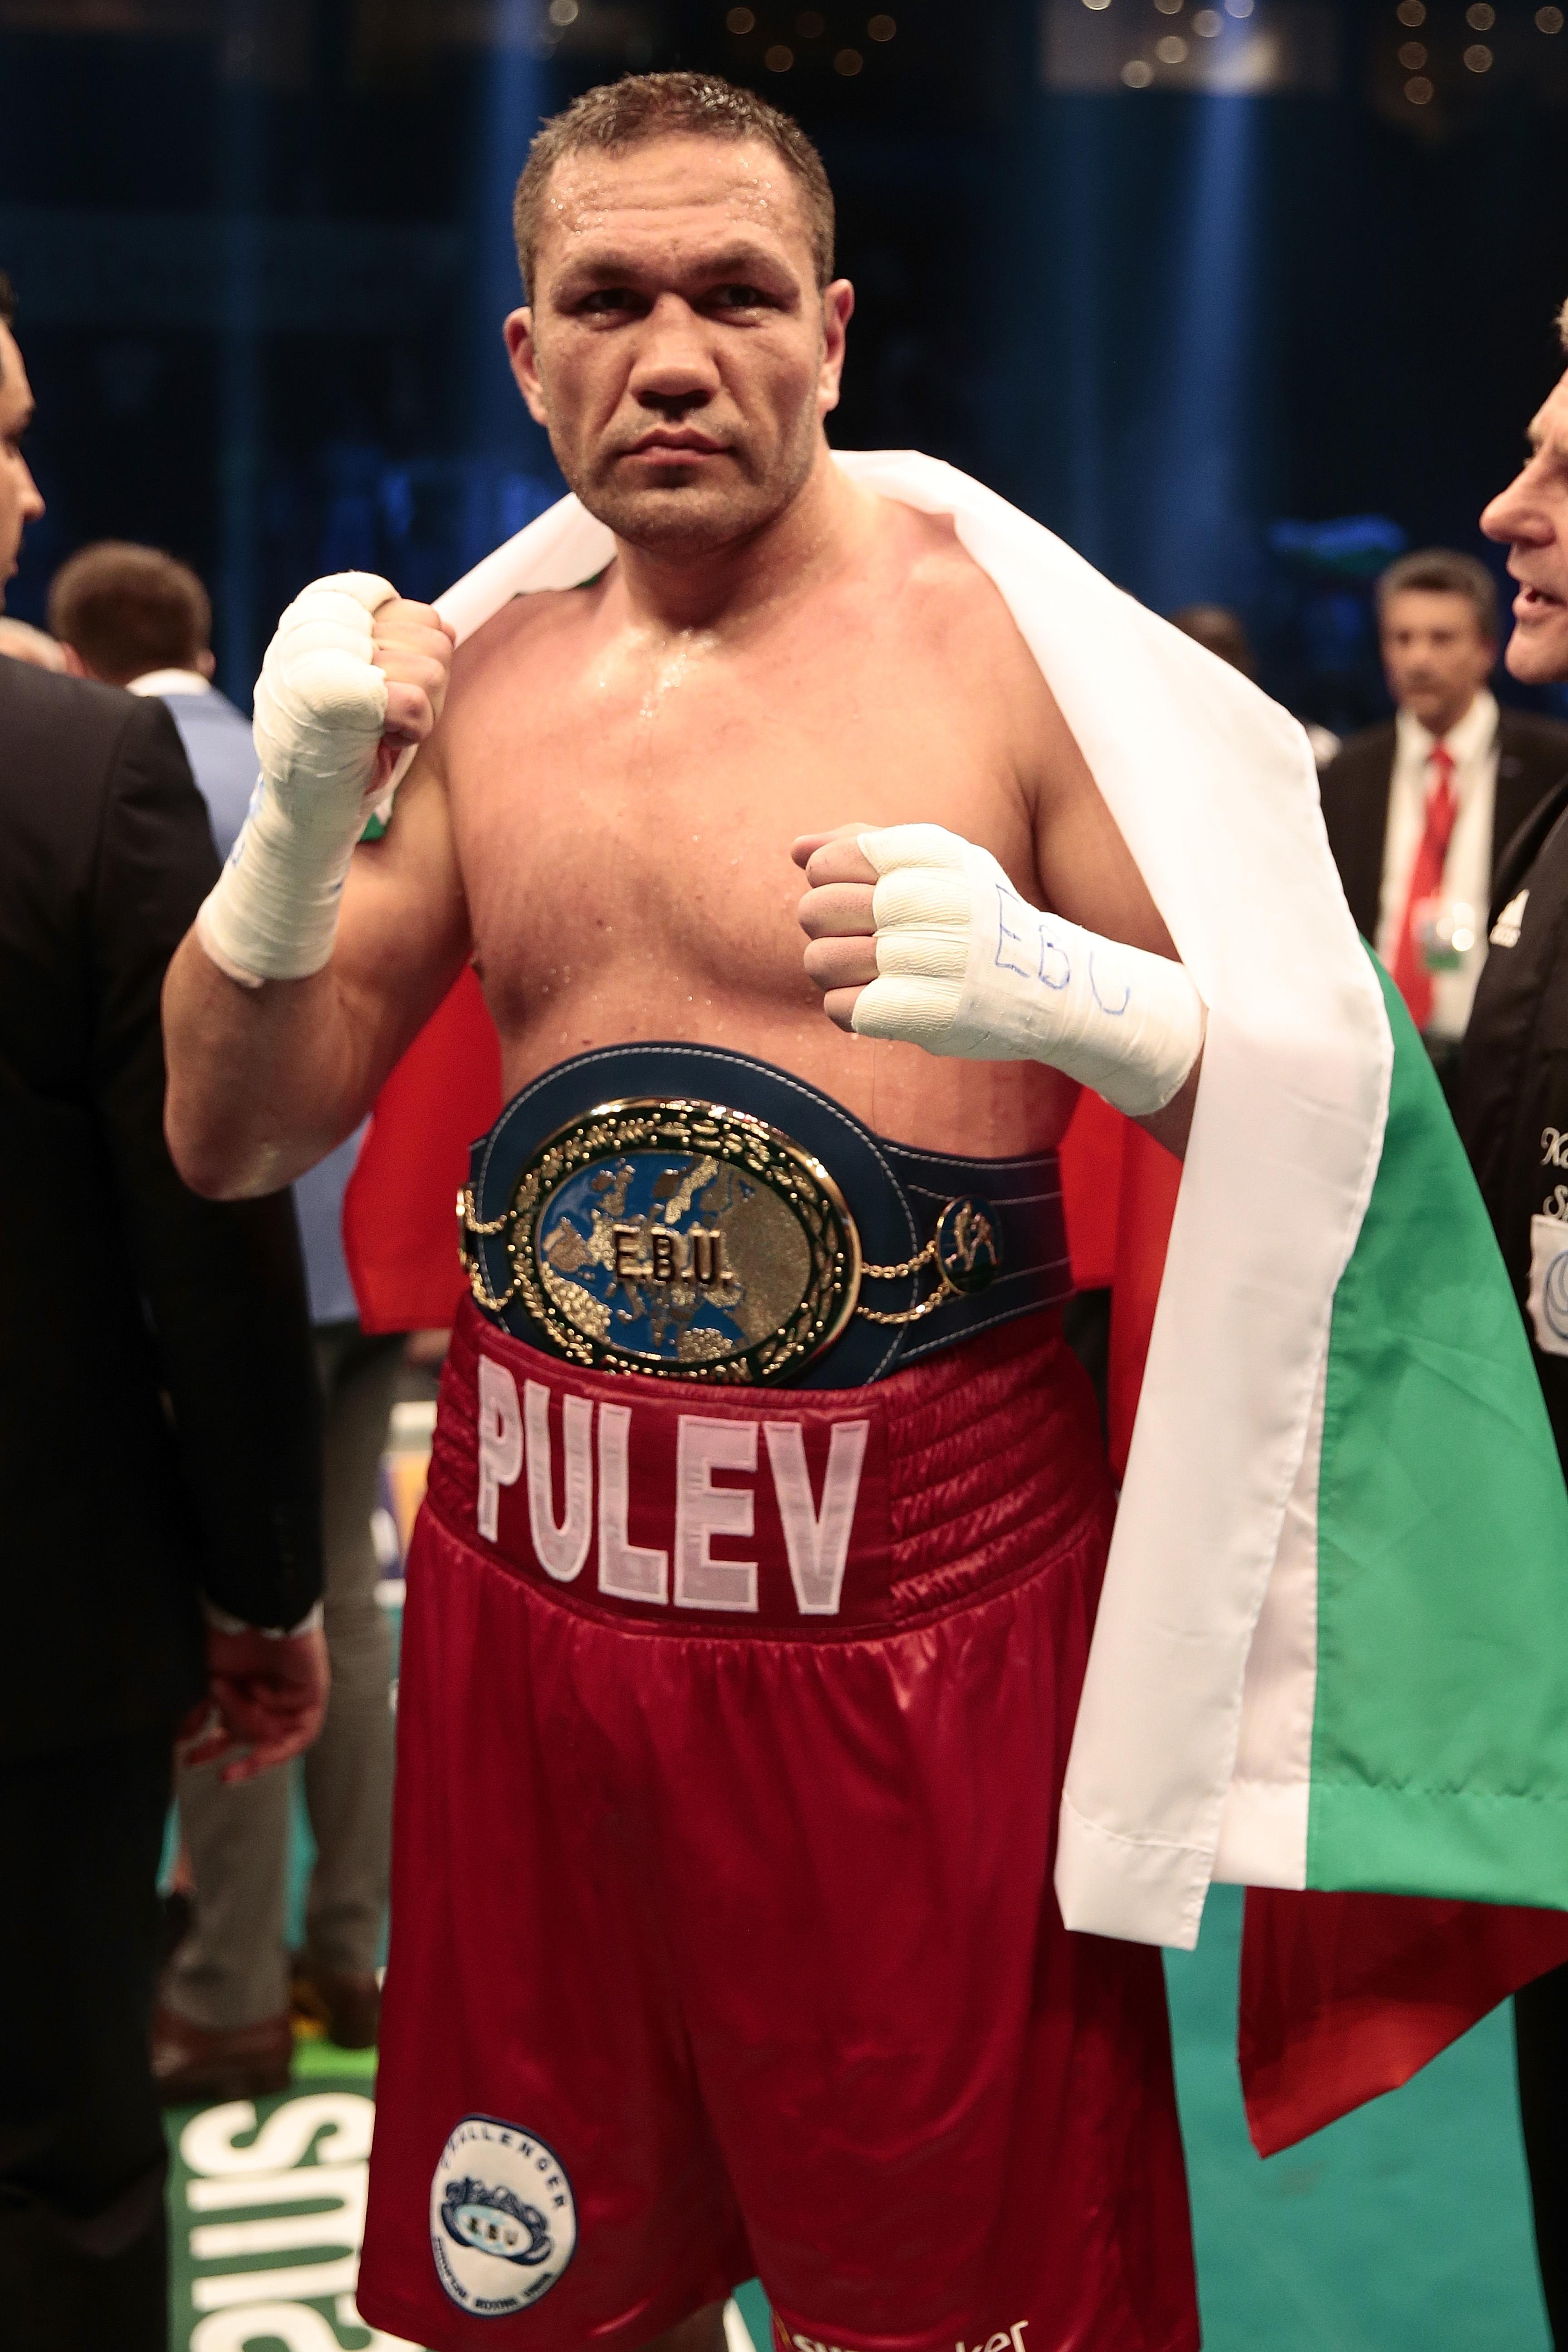 Kubrat Pulev has confirmed he will fight Hughie Fury in his homeland of Bulgaria